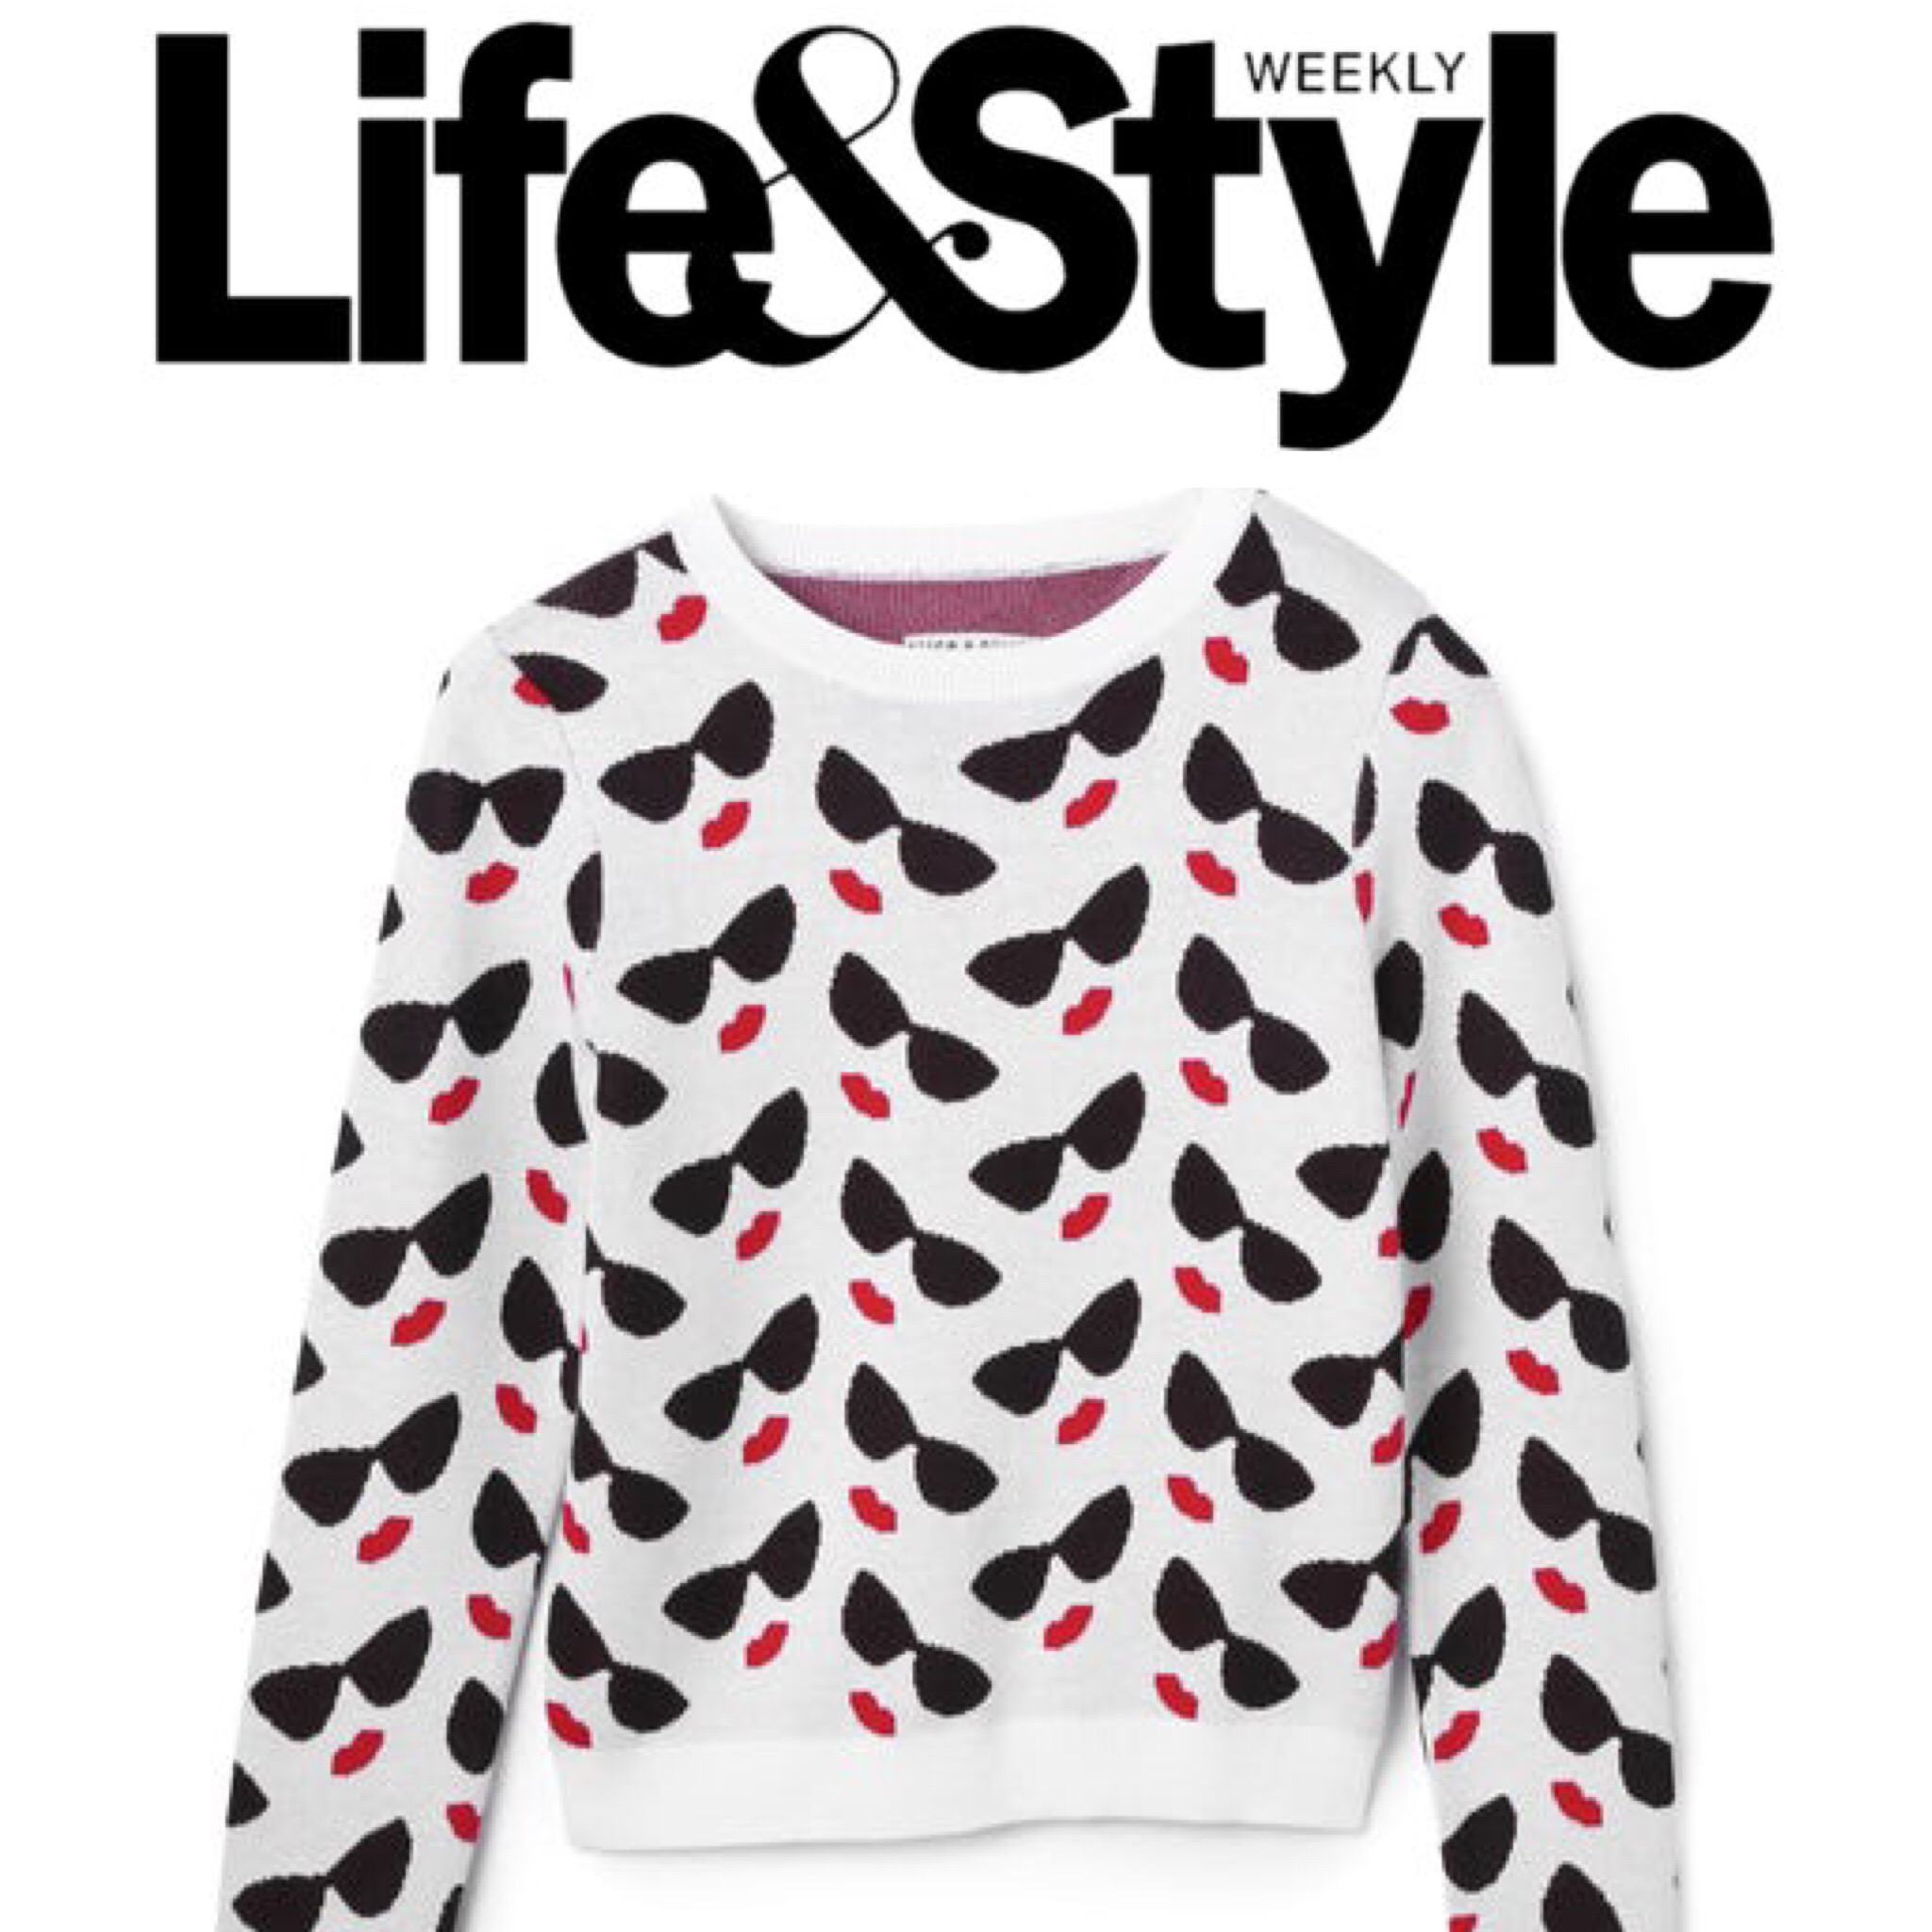 http://www.lifeandstylemag.com/posts/update-your-wardrobe-with-these-20-eye-catching-statement-sweaters-53444/photos/spring-statement-sweaters-styles-82494